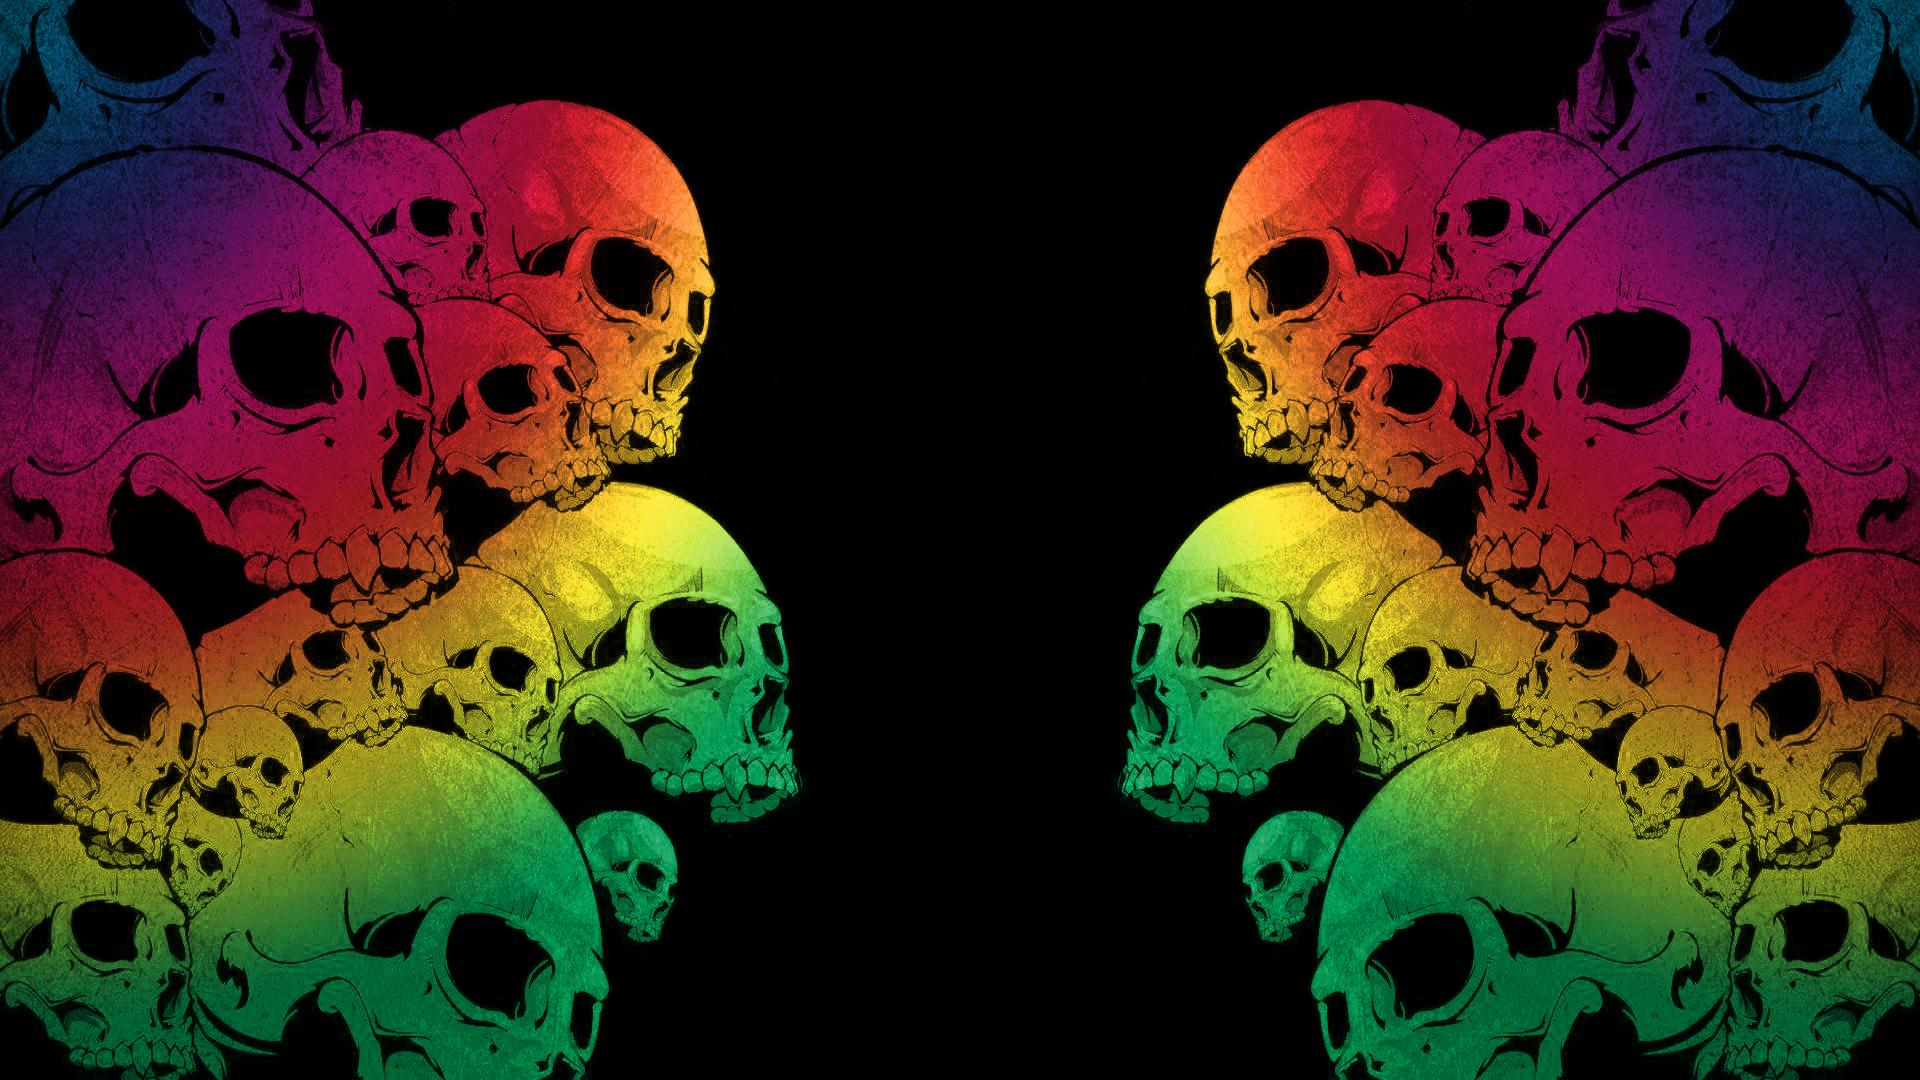 Simple Wallpaper High Resolution Skull - skull-backgrounds-19375-19866-hd-wallpapers  Collection_58212.jpg